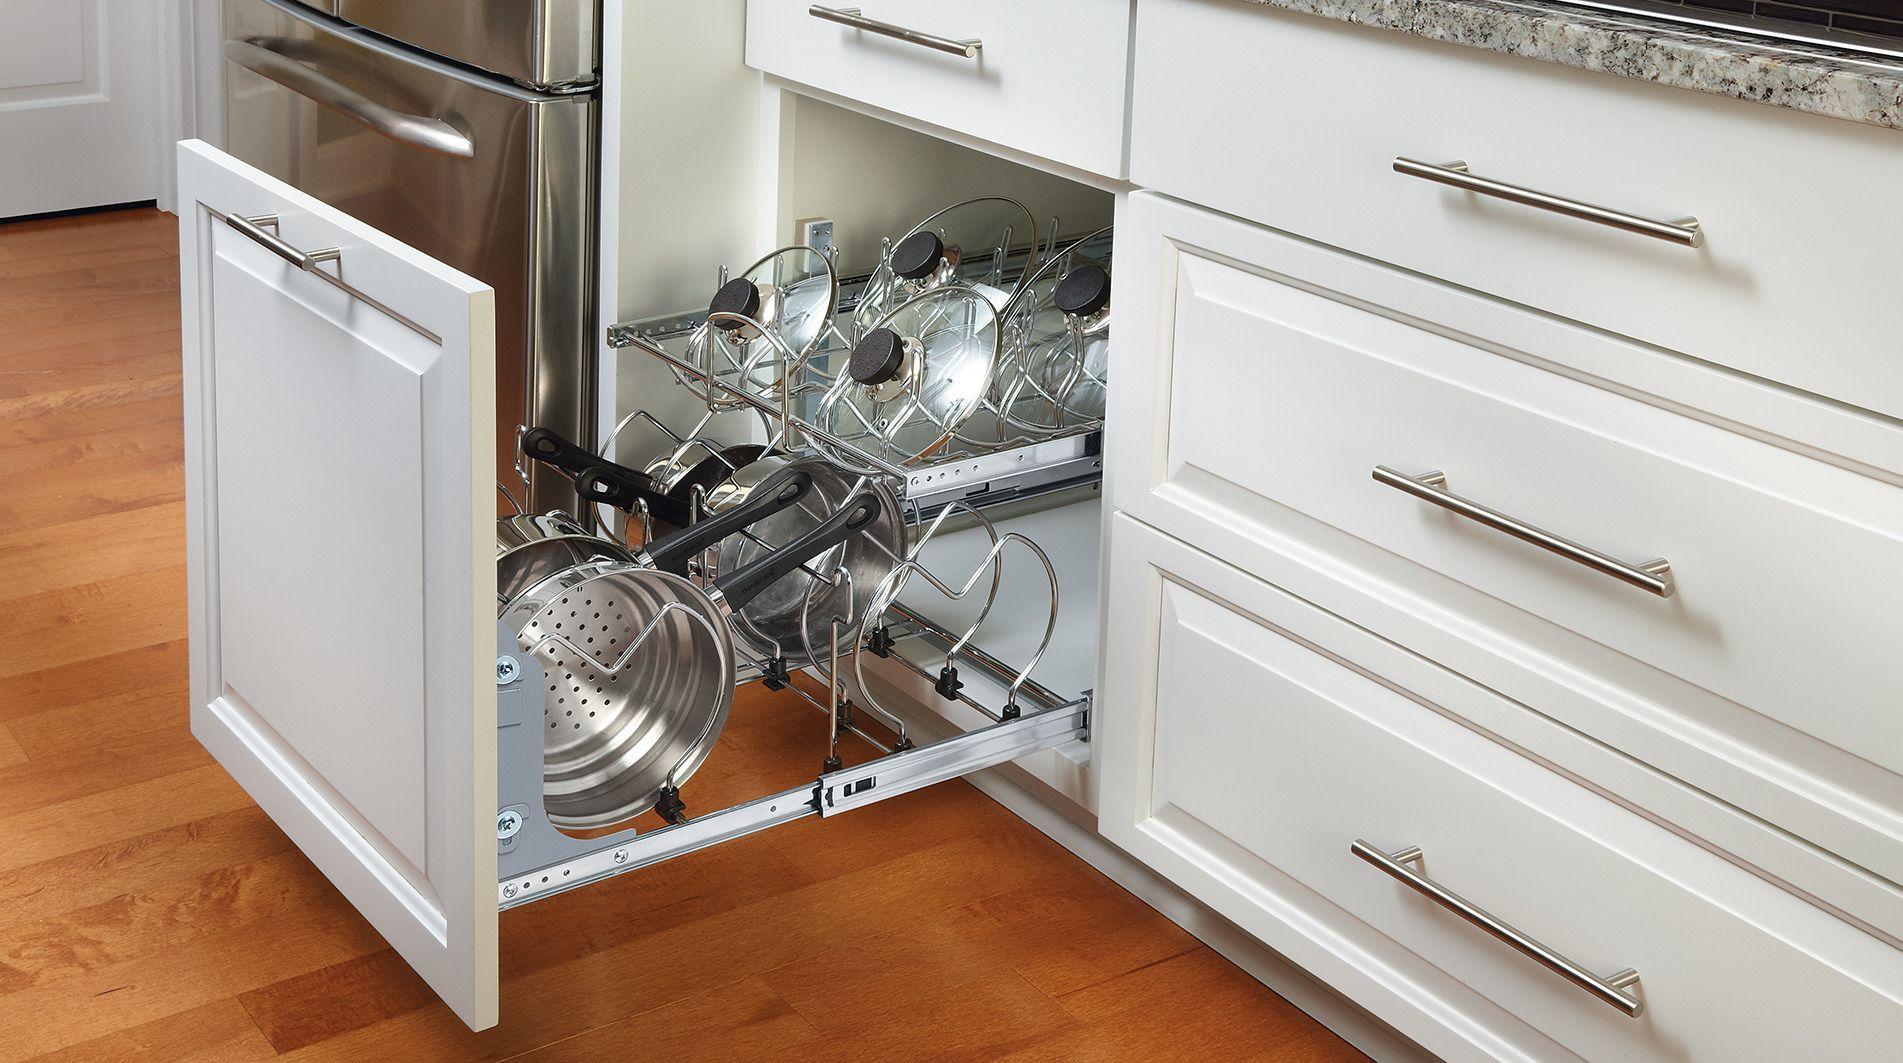 Two Tier Cookware Organizer In 2020 Cookware Organization